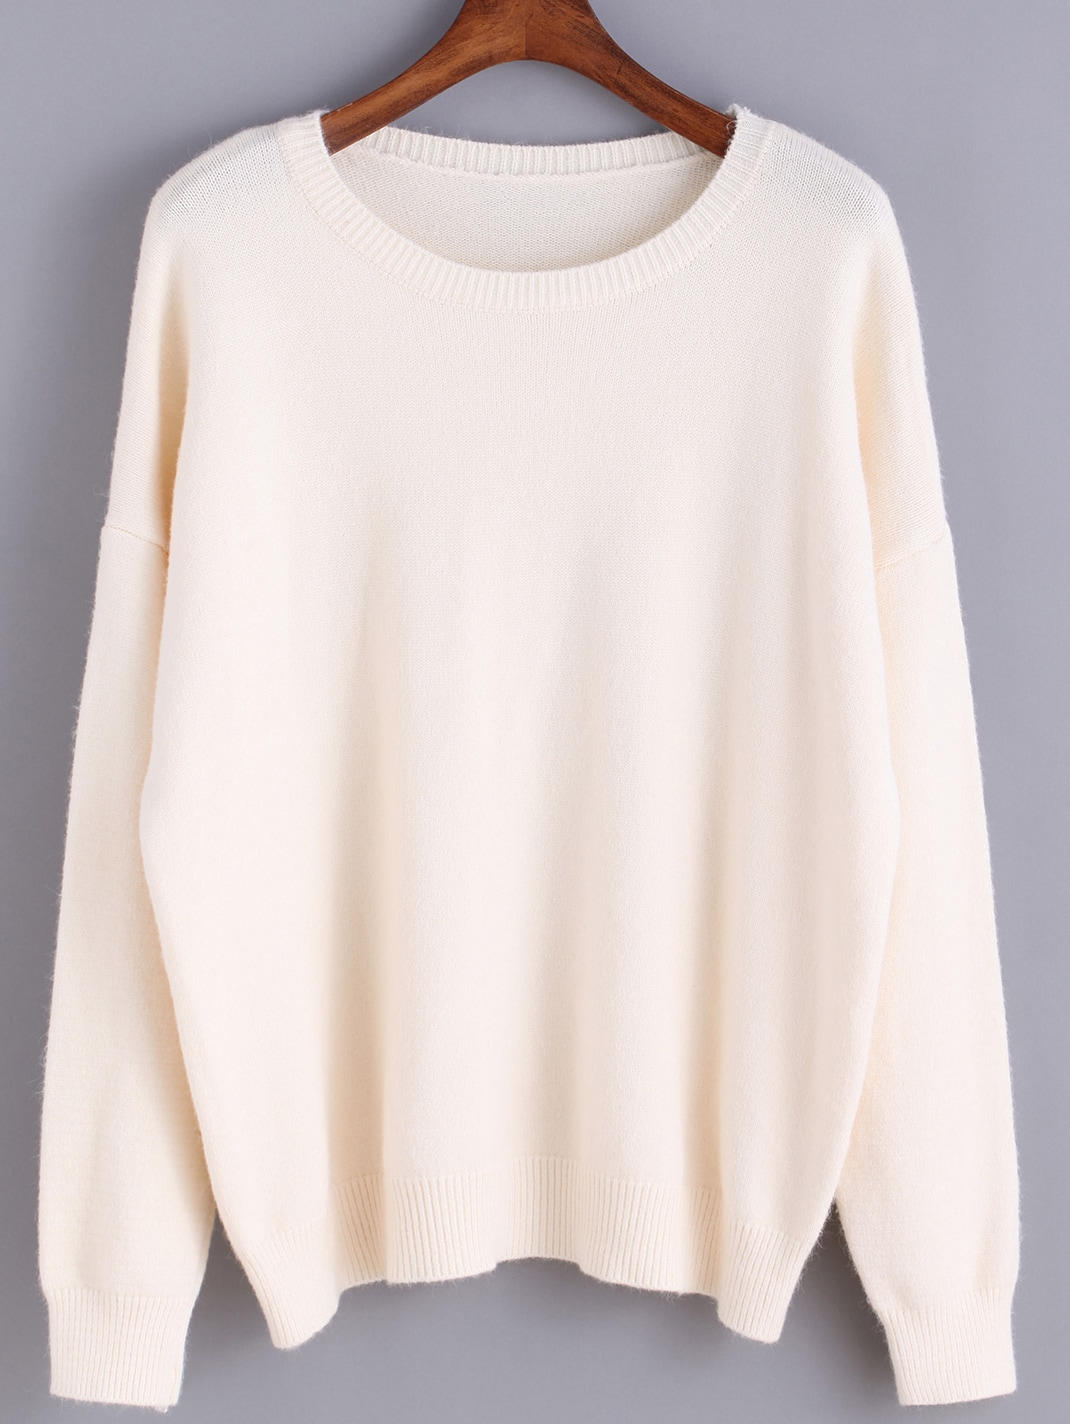 Round Neck Knit Beige Sweater -SheIn(Sheinside)